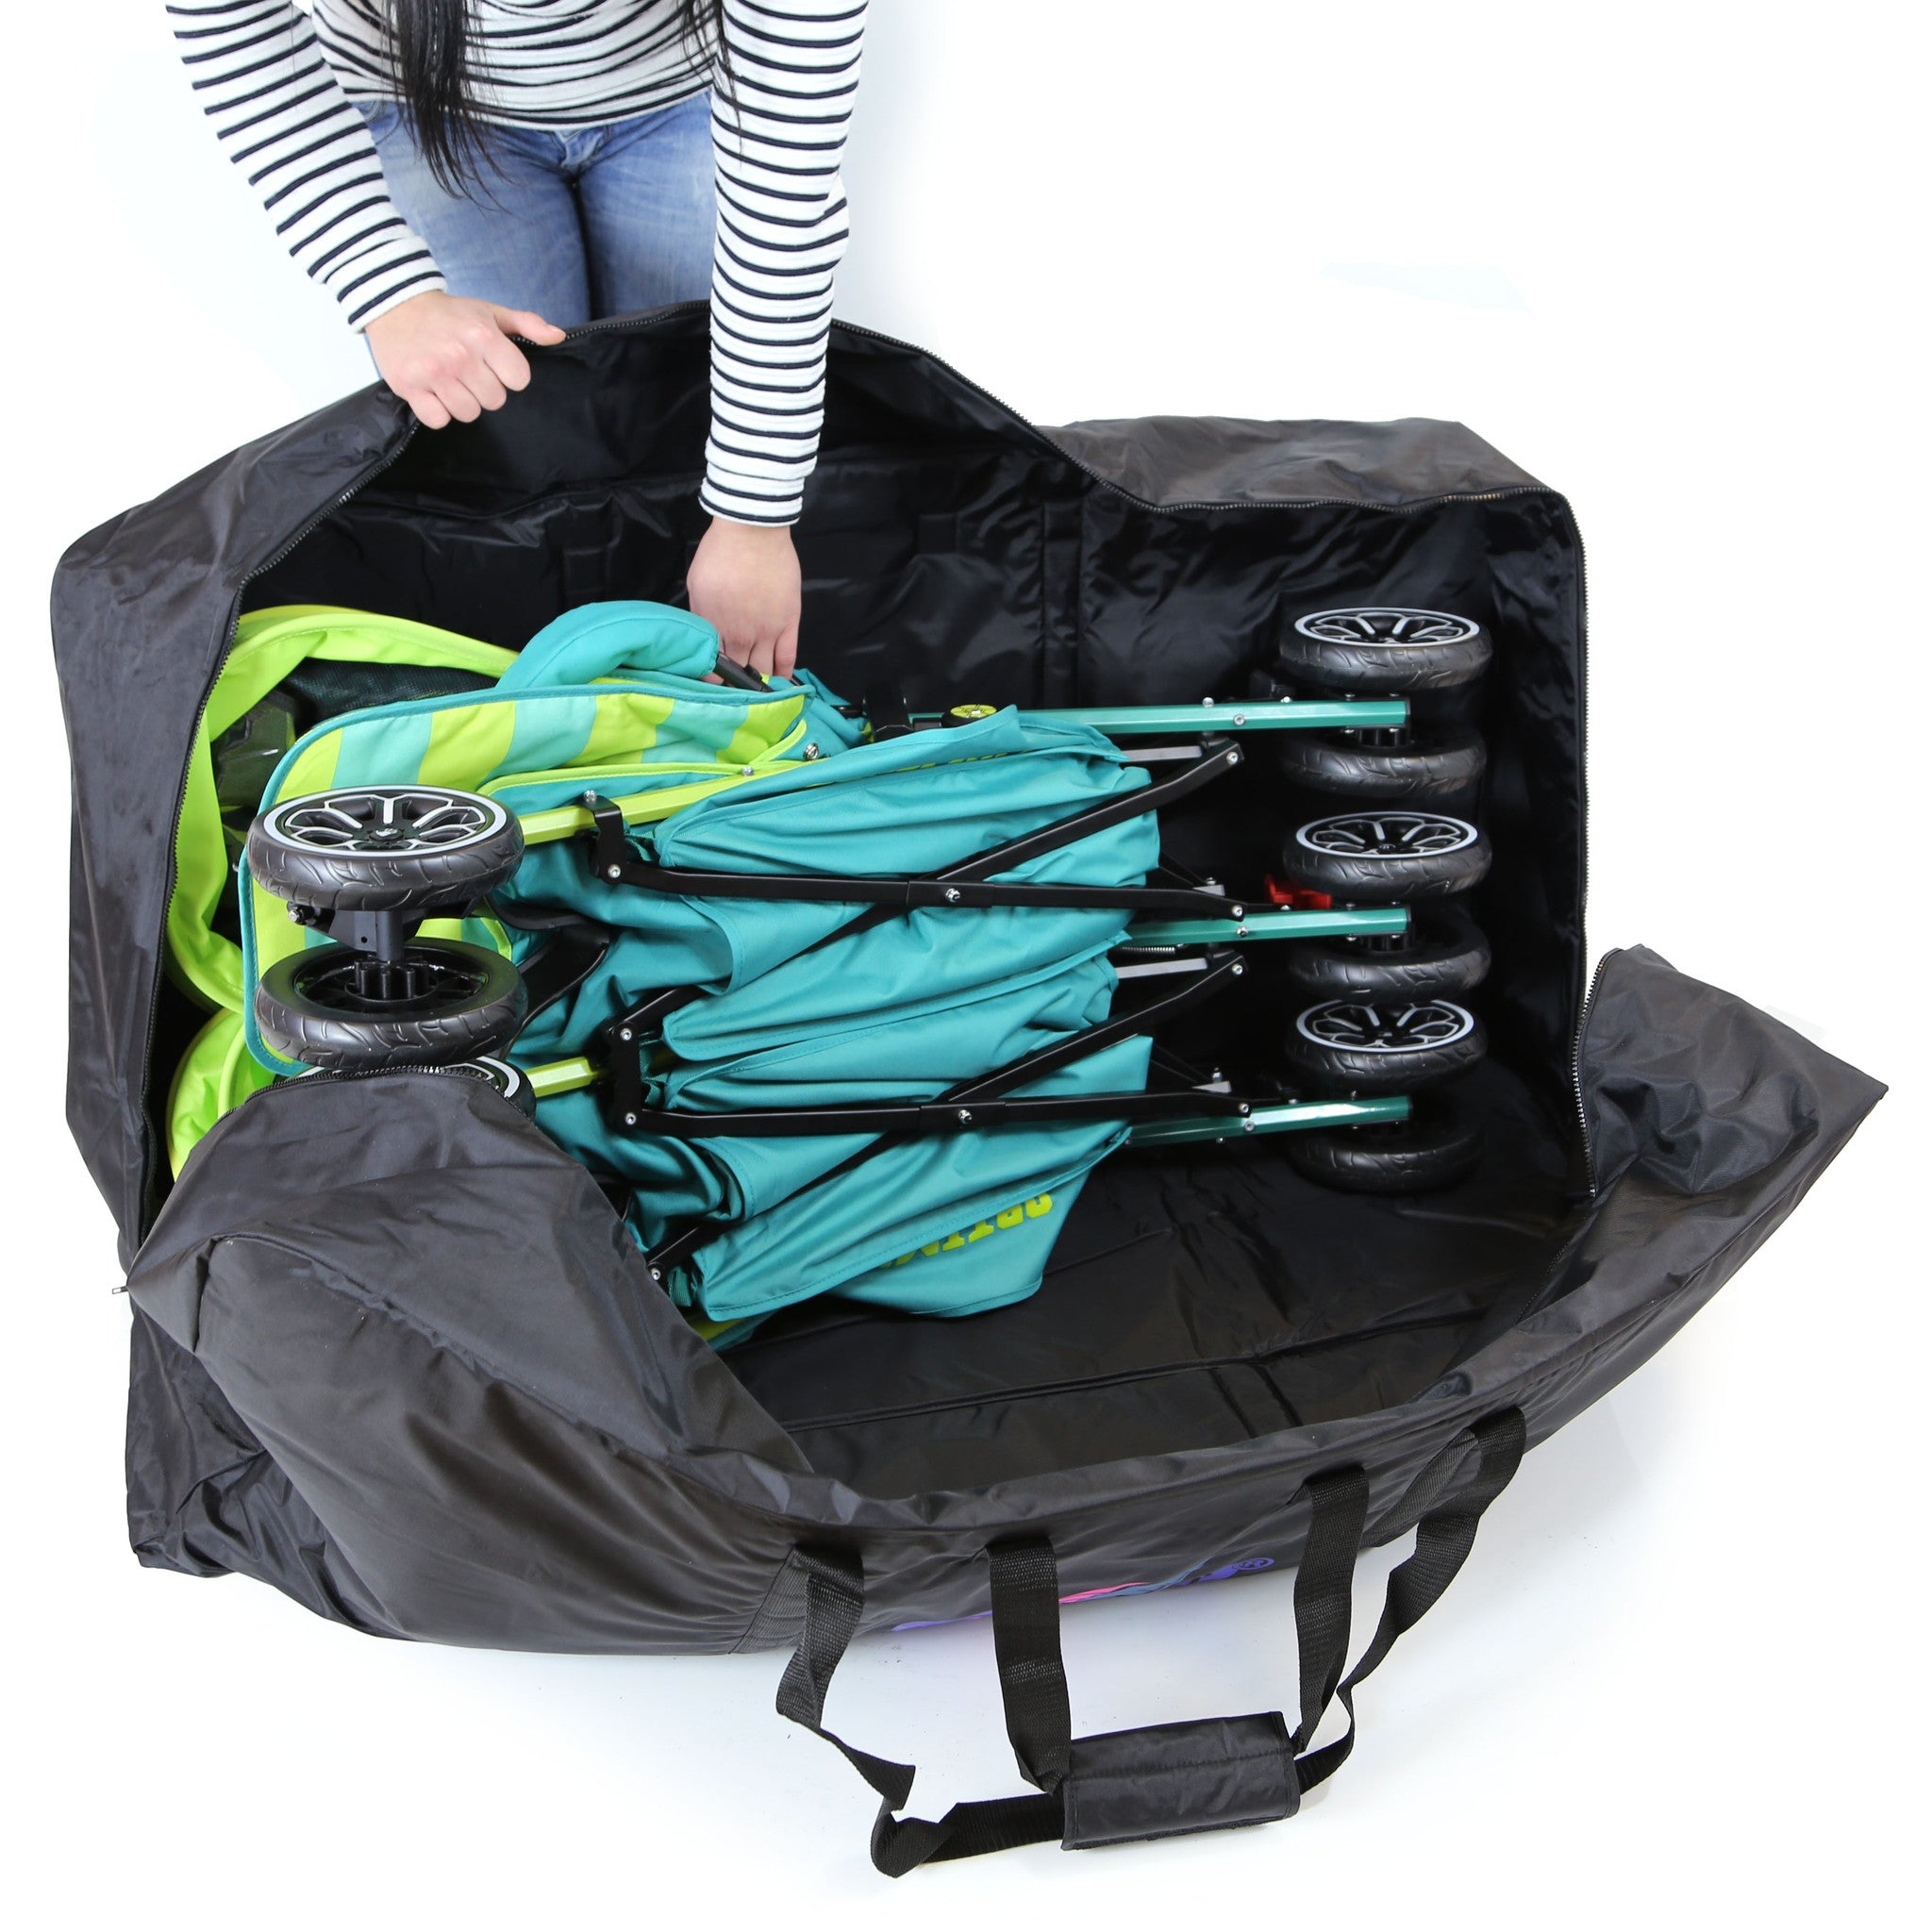 Transport Bag Twin Stroller Luggage Bag For Mamas /& Papas Kato Double Buggy